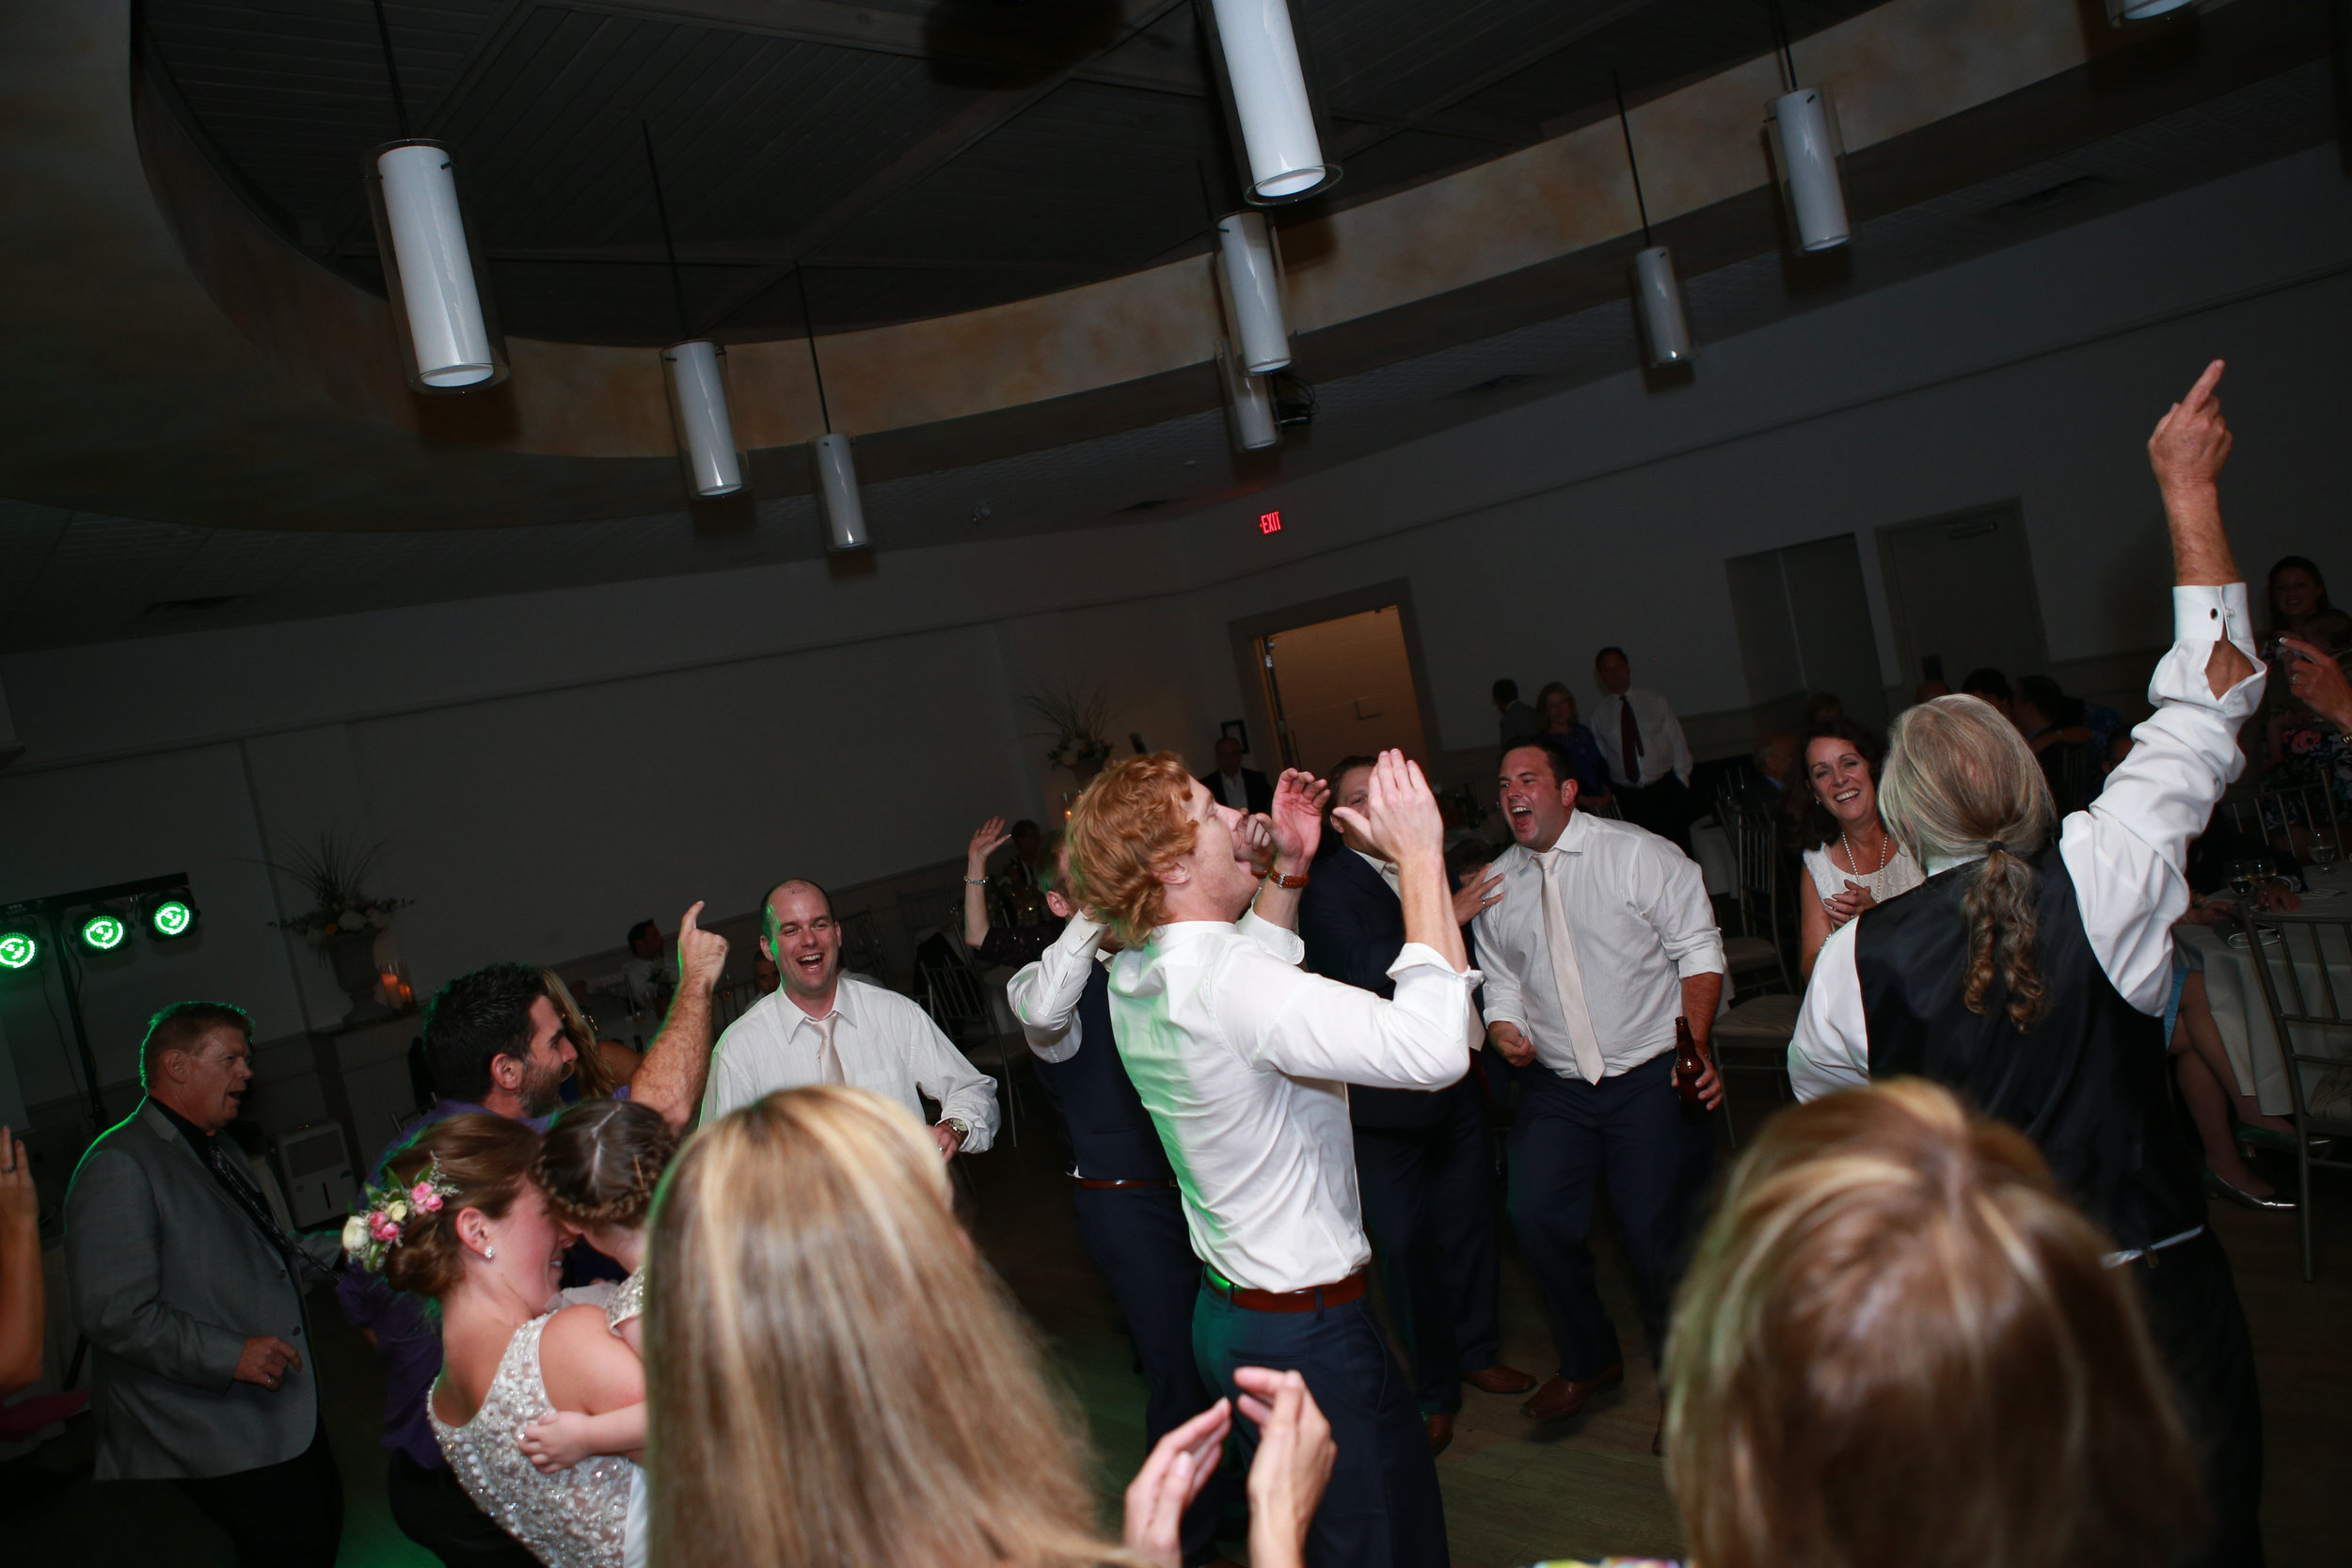 Dance-offs are always a fun idea for co-ed bridal showers. Photography: Maigan Cowen.